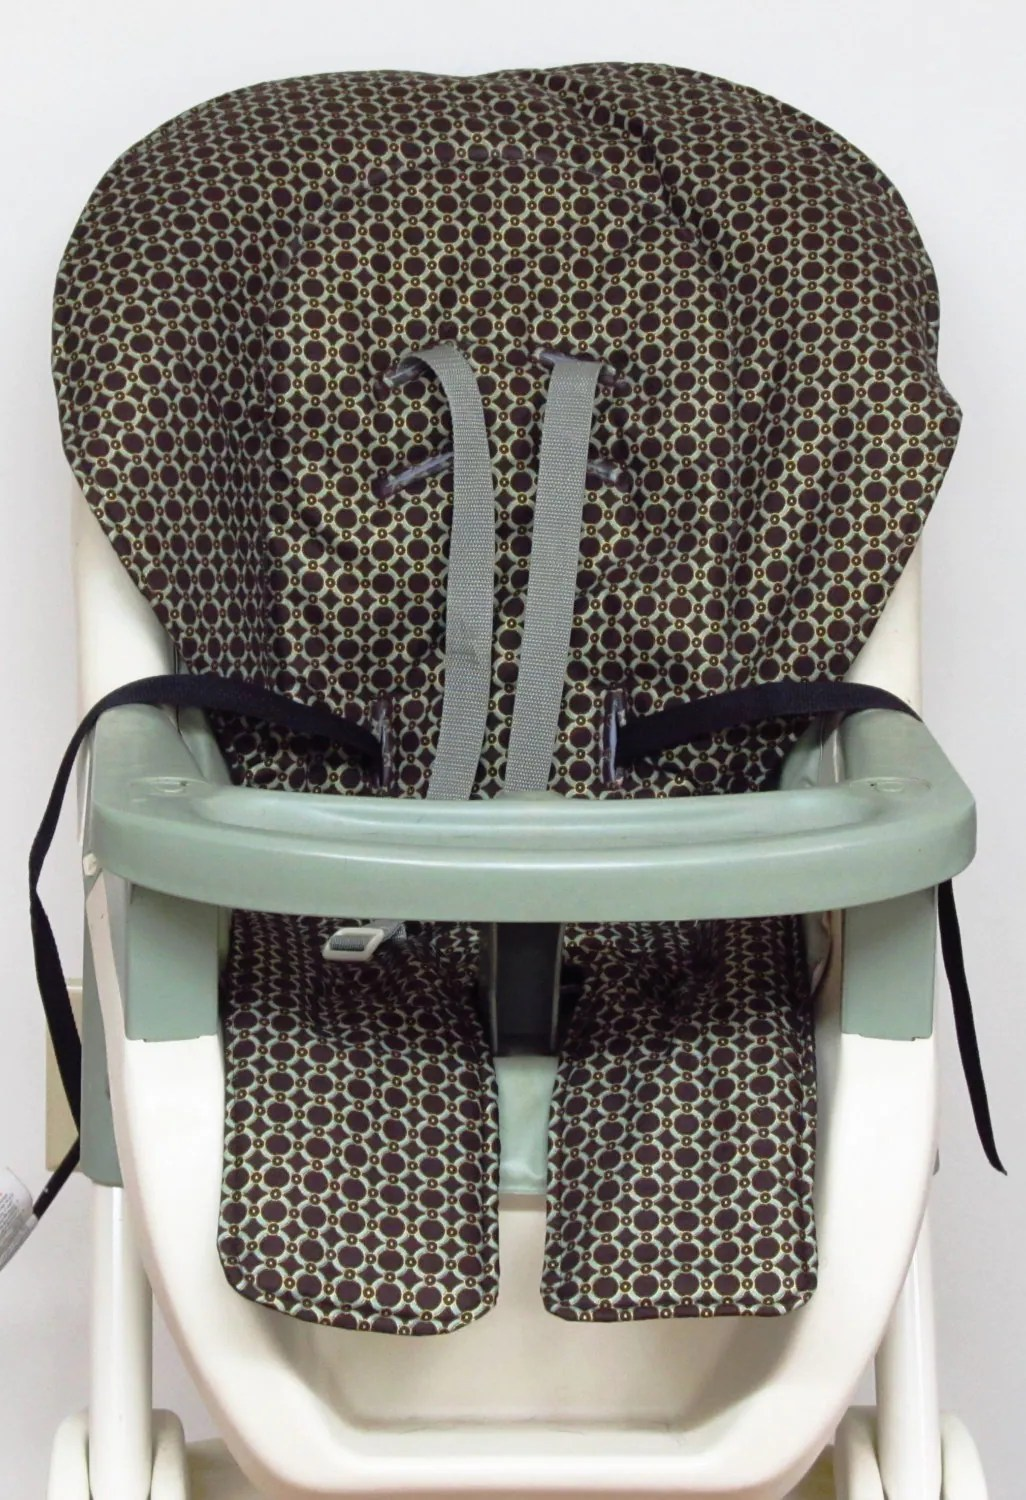 graco high chair cover replacement dayton factory pad gold rimmed green